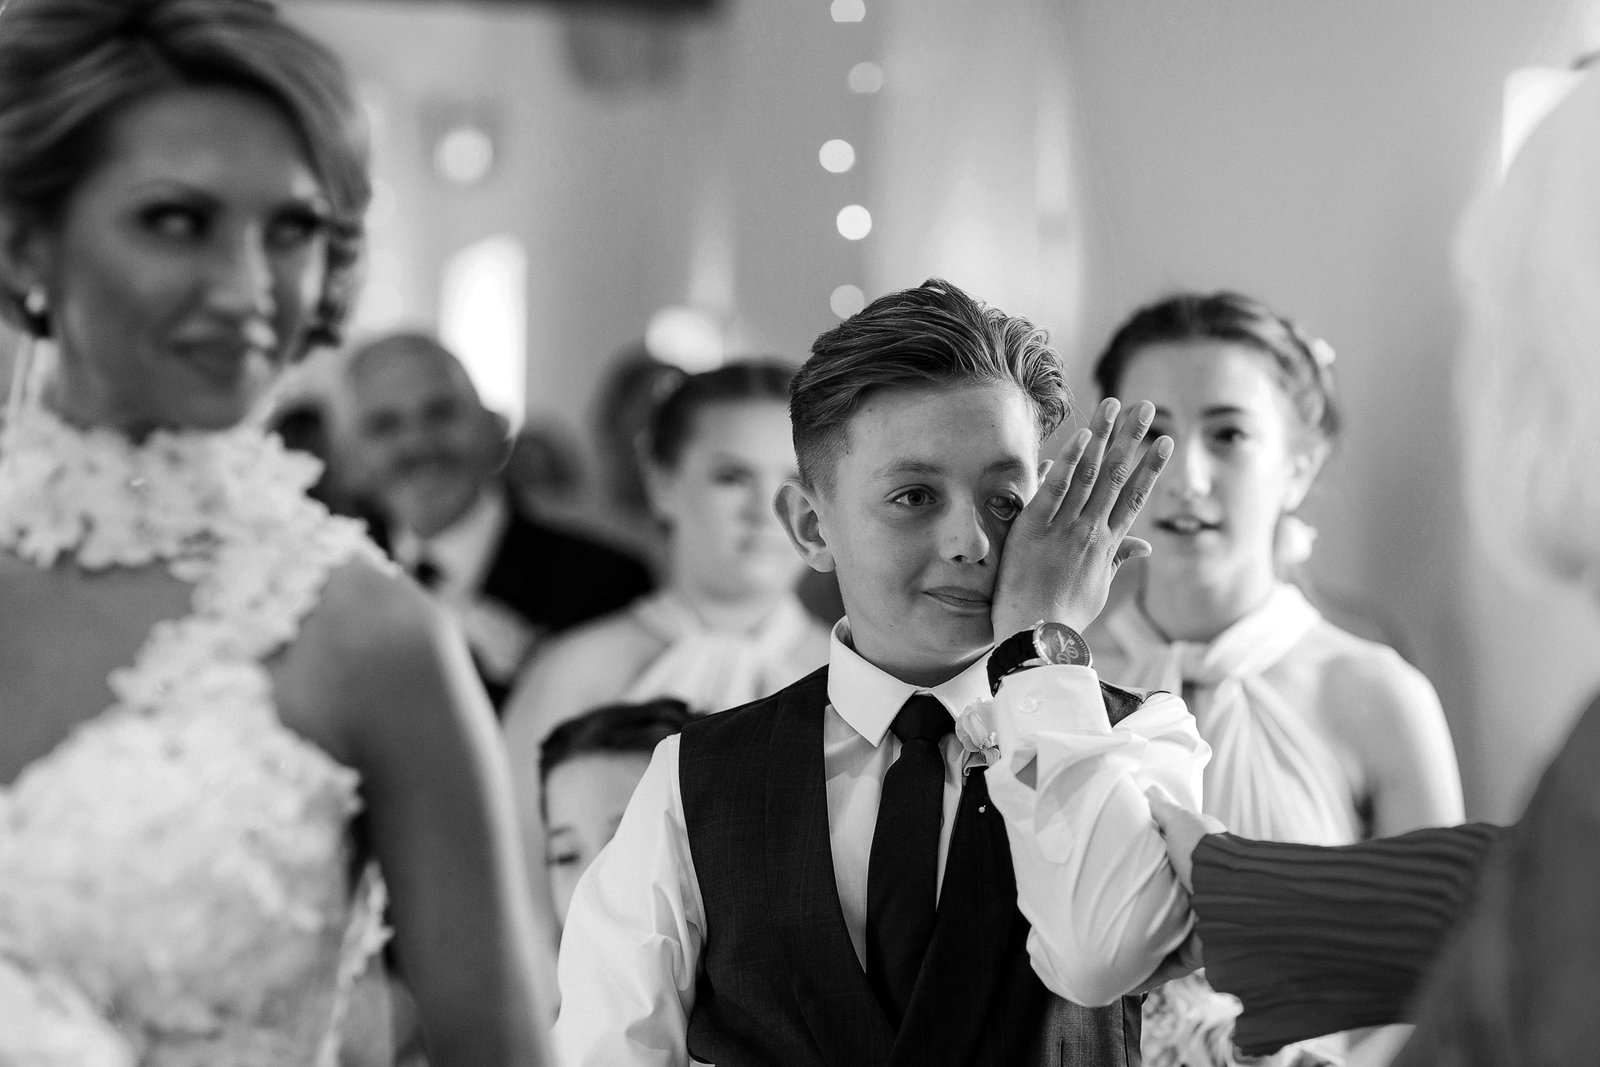 Son of the bride weeps with happiness and pride  when giving his mum away at her wedding during this Southend Barns Wedding ceremony captured by Nicci at Adorlee Photography